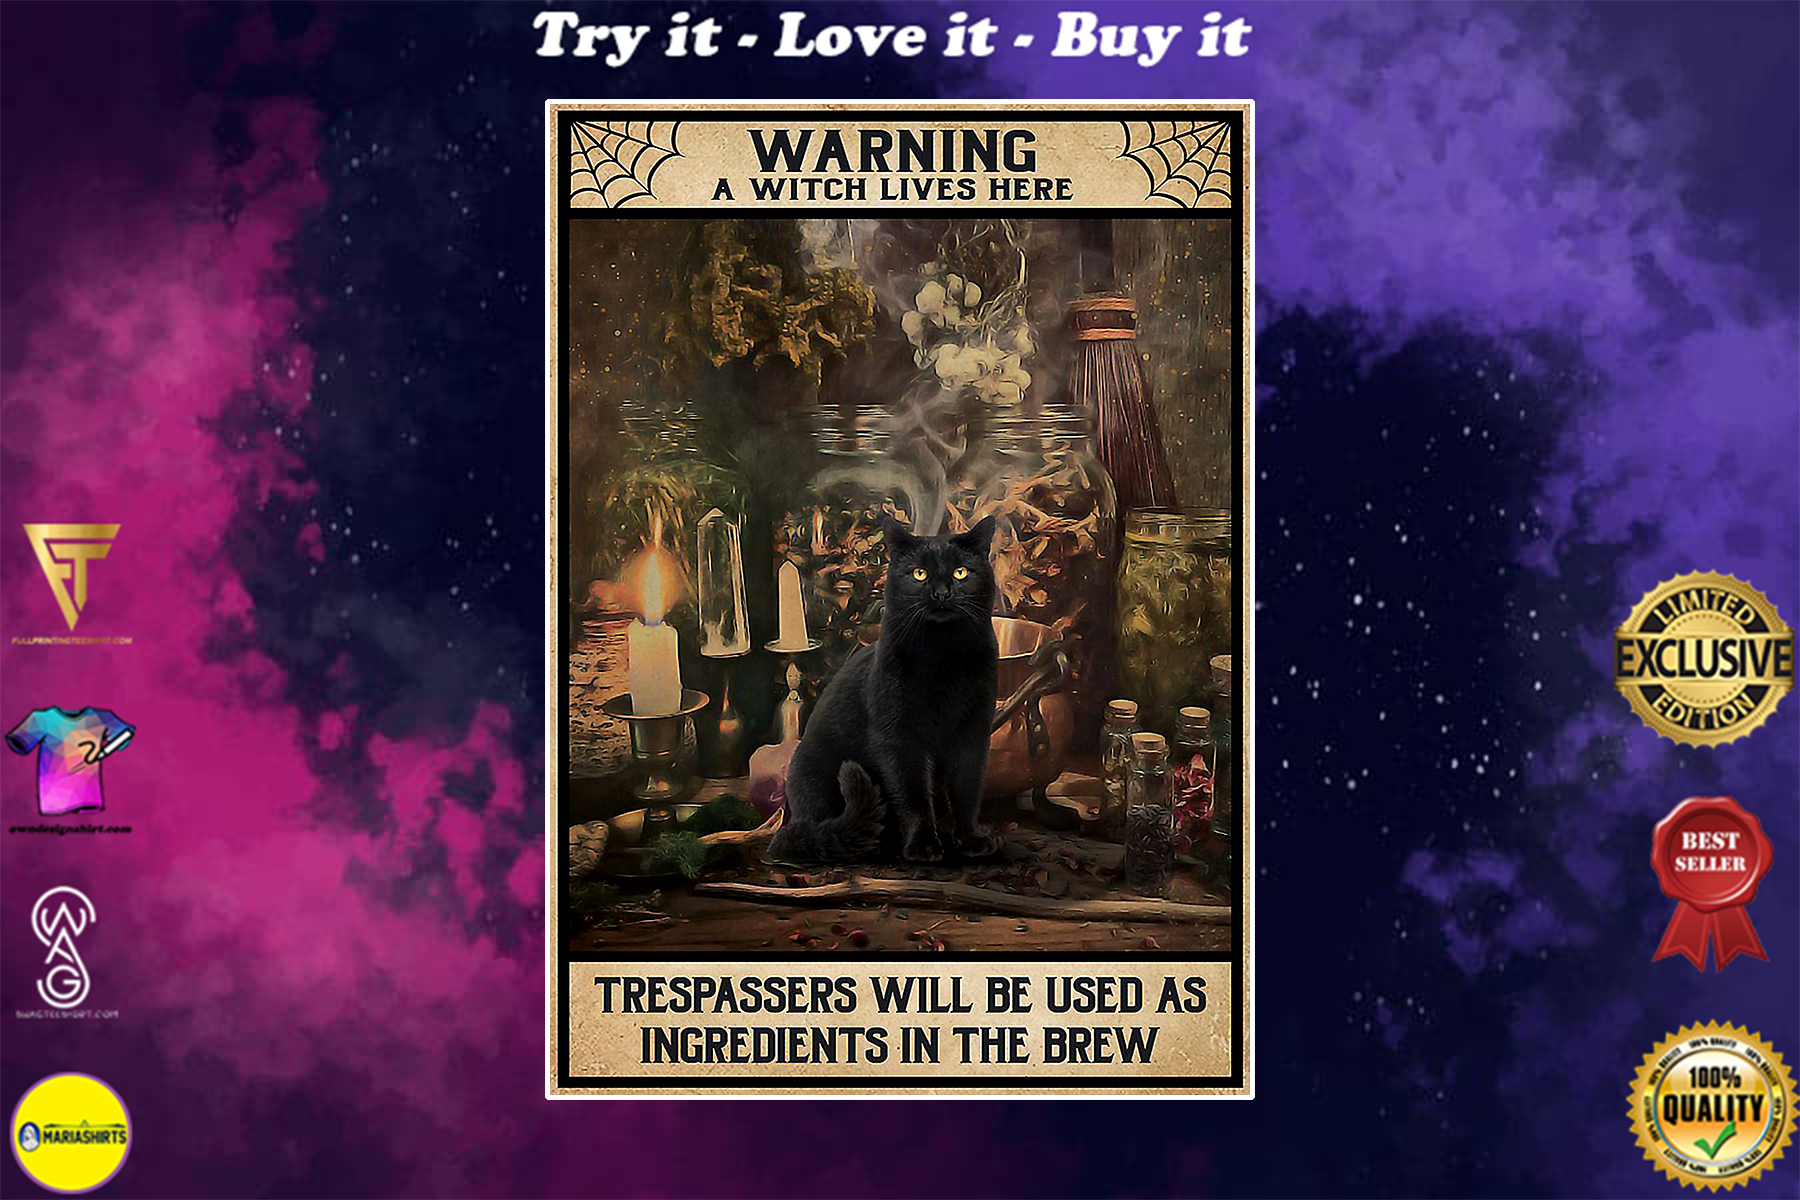 vintage black cat warning a witch lives here all trespassers will be used as ingredients poster